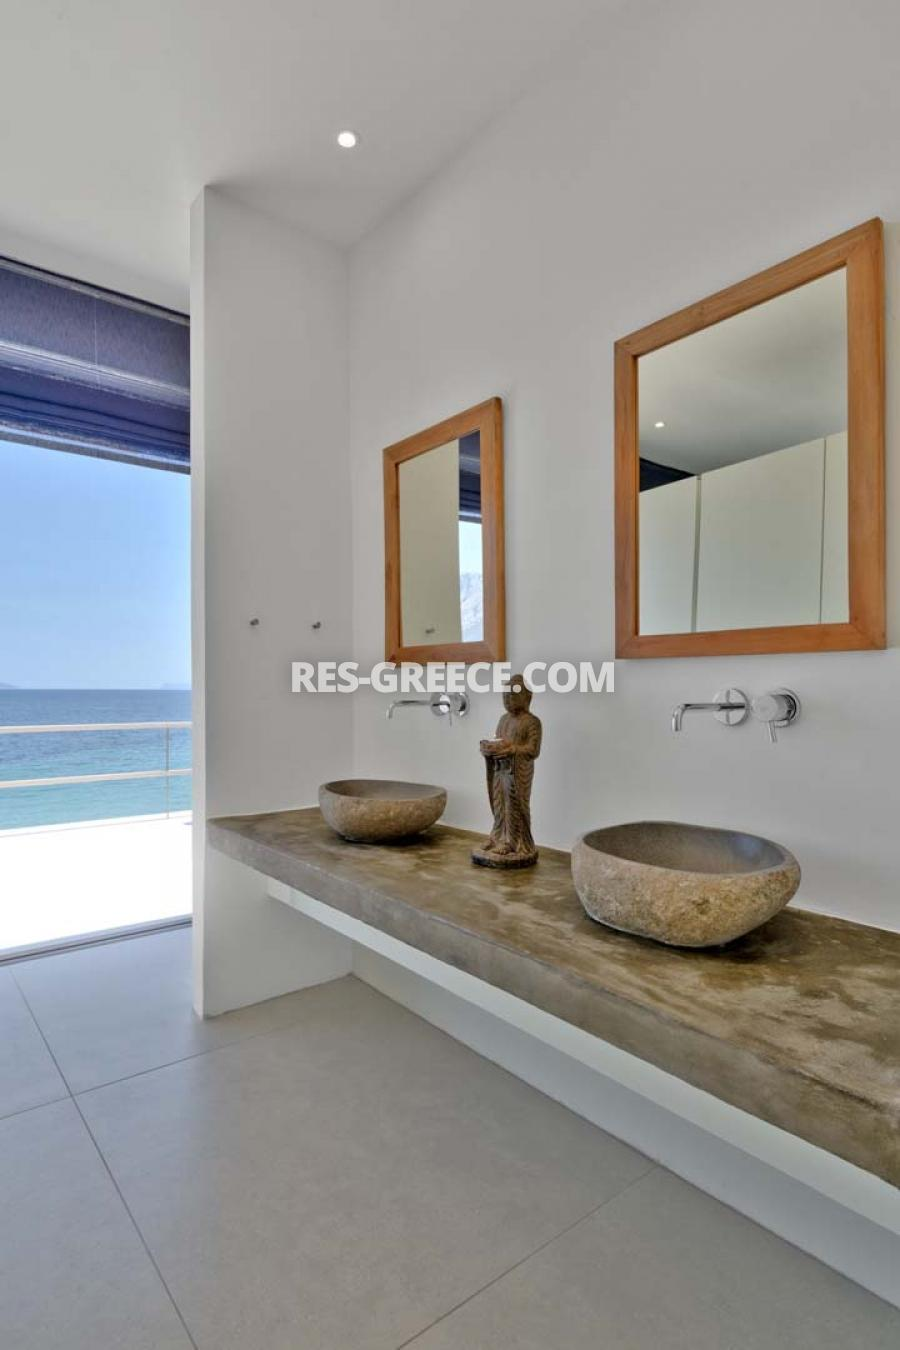 Kastor, Epir, Greece - off-plan villa project first line to the sea - Photo 5